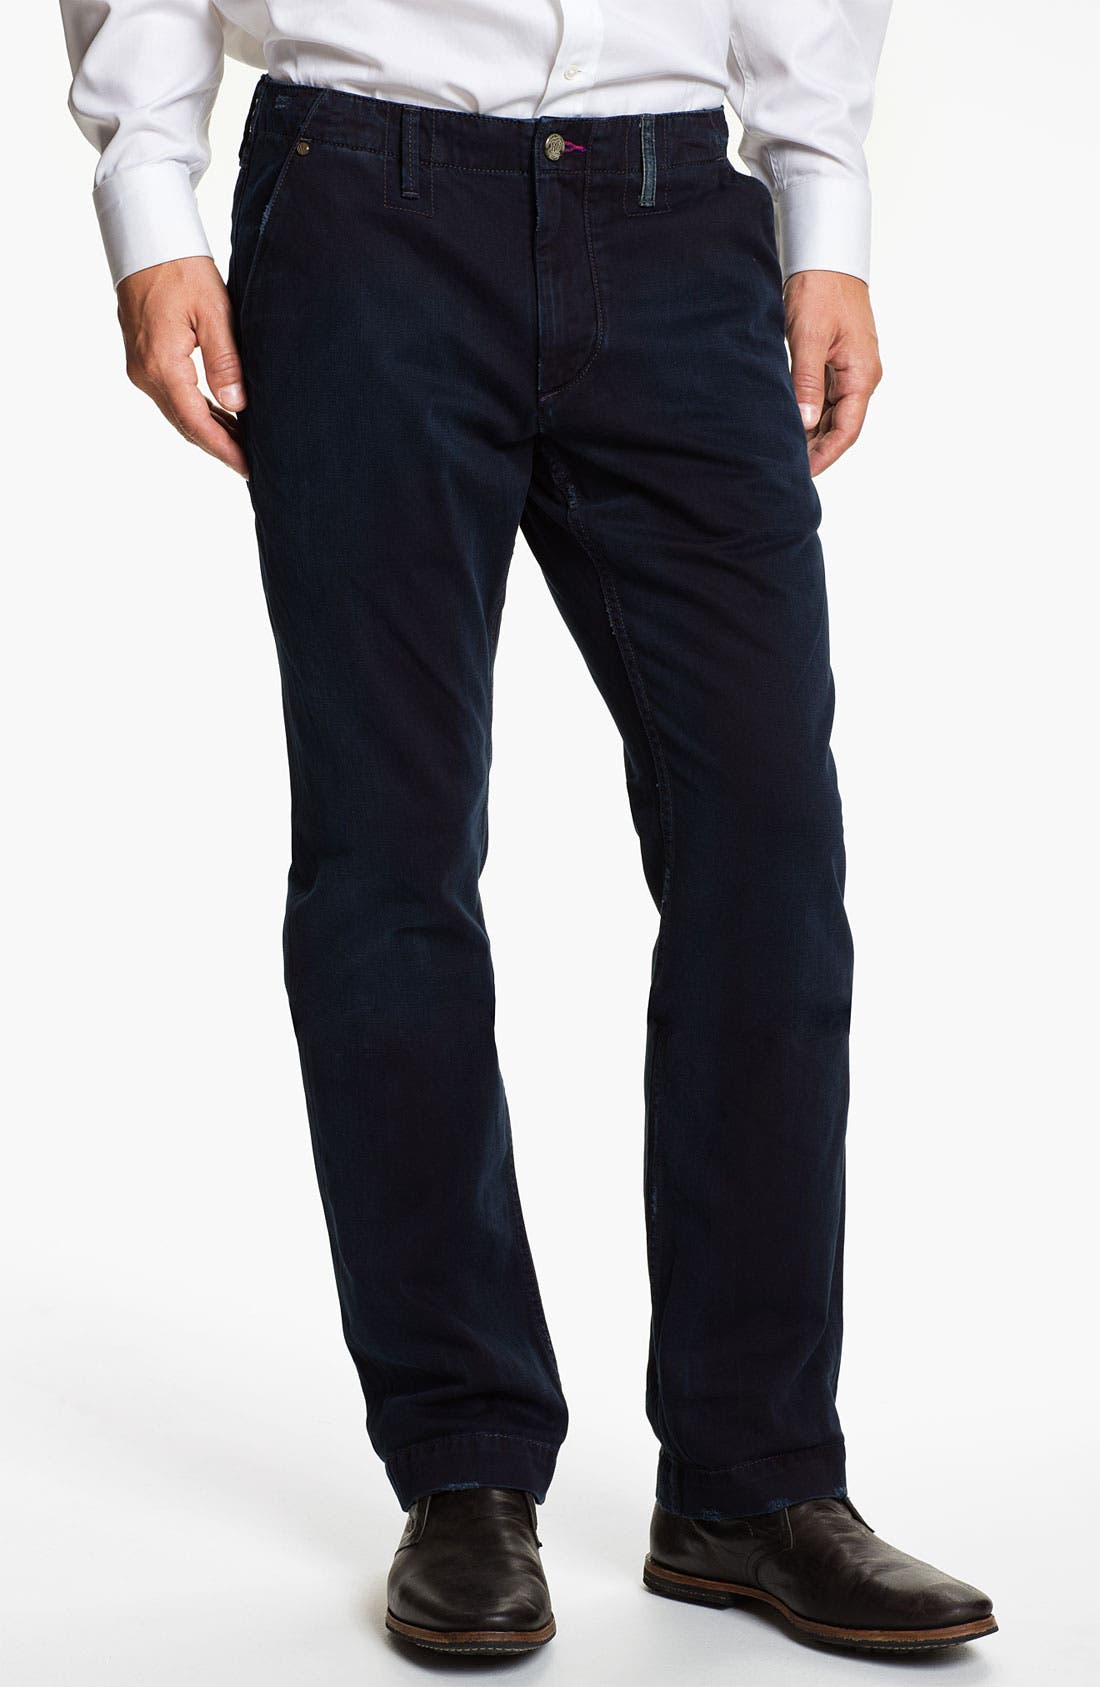 Alternate Image 1 Selected - Robert Graham Jeans 'Blue Tar' Classic Fit Straight Leg Chinos